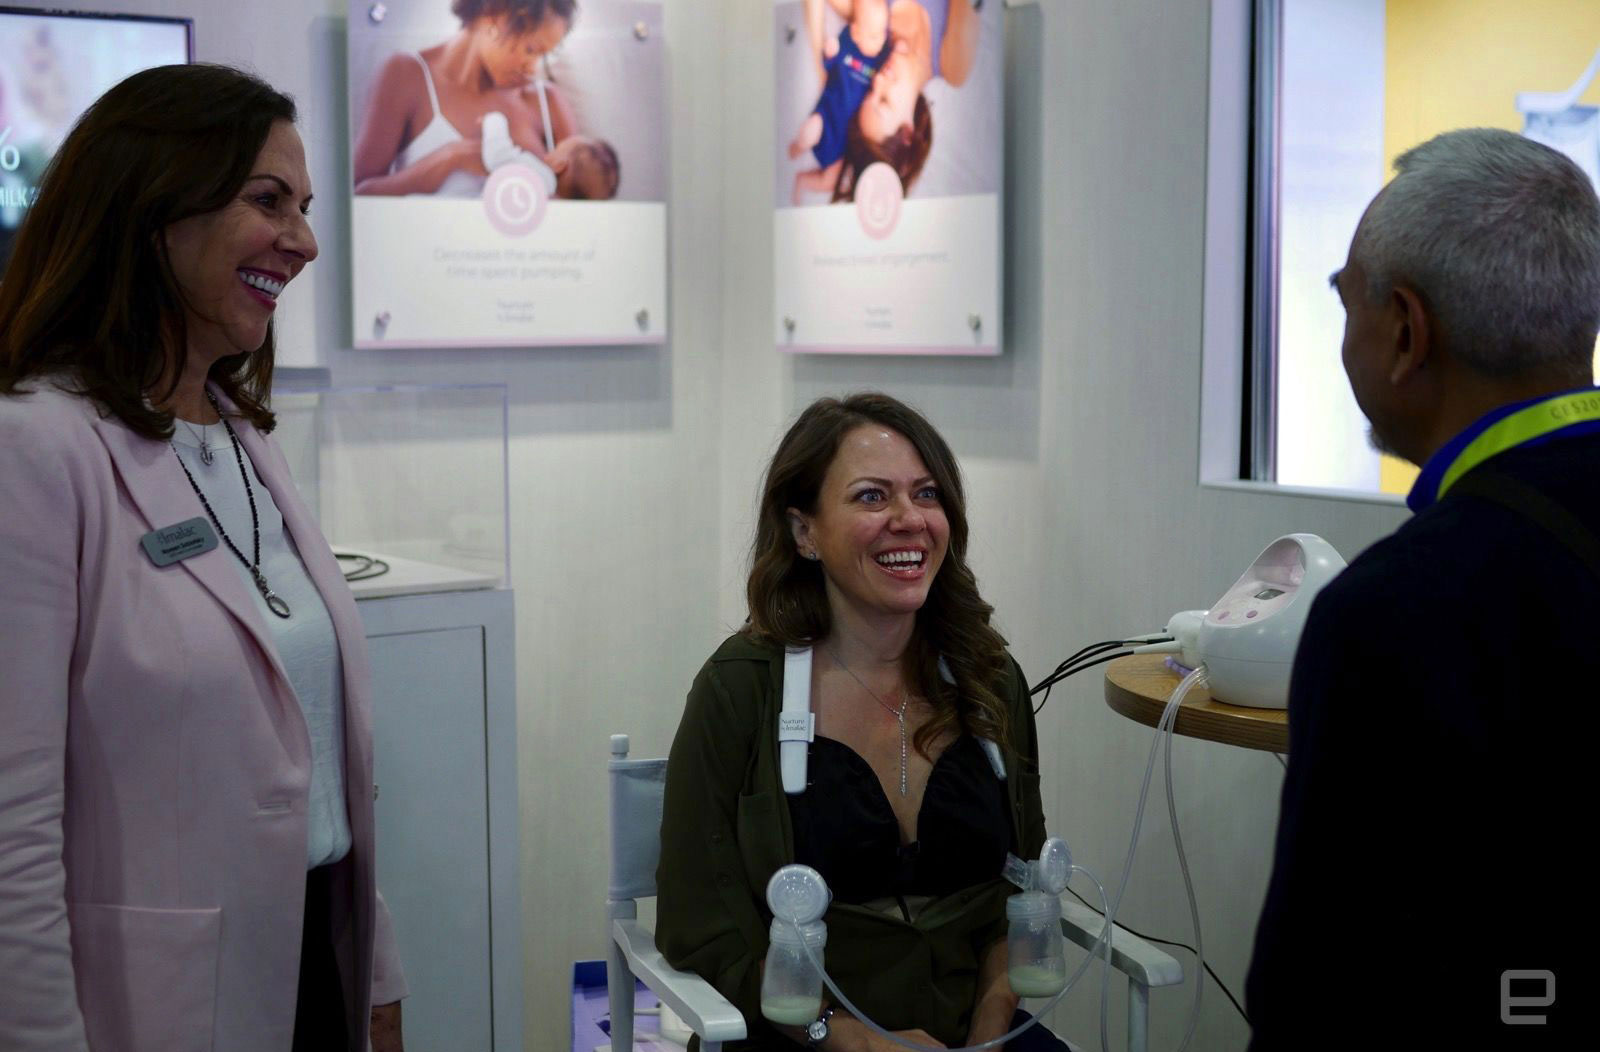 woman pumped breast milk on the CES show floor. So what?